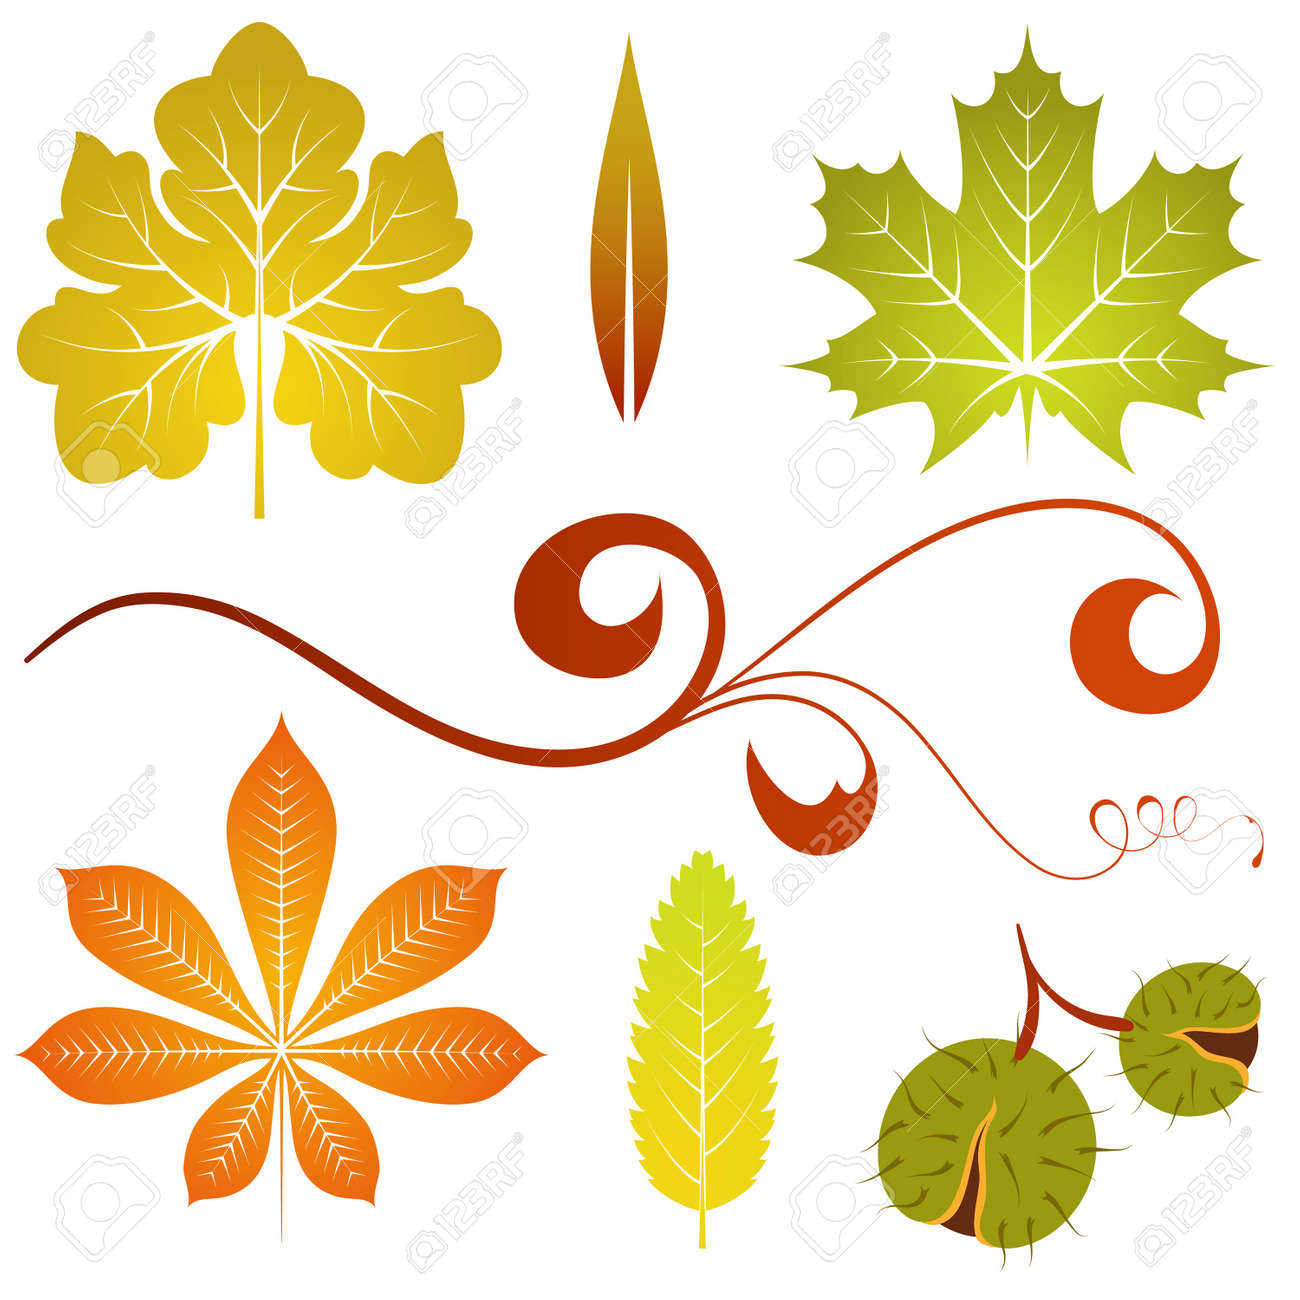 Collect isolated autumn leaves and chestnut, element for design, vector illustration Stock Vector - 9250750